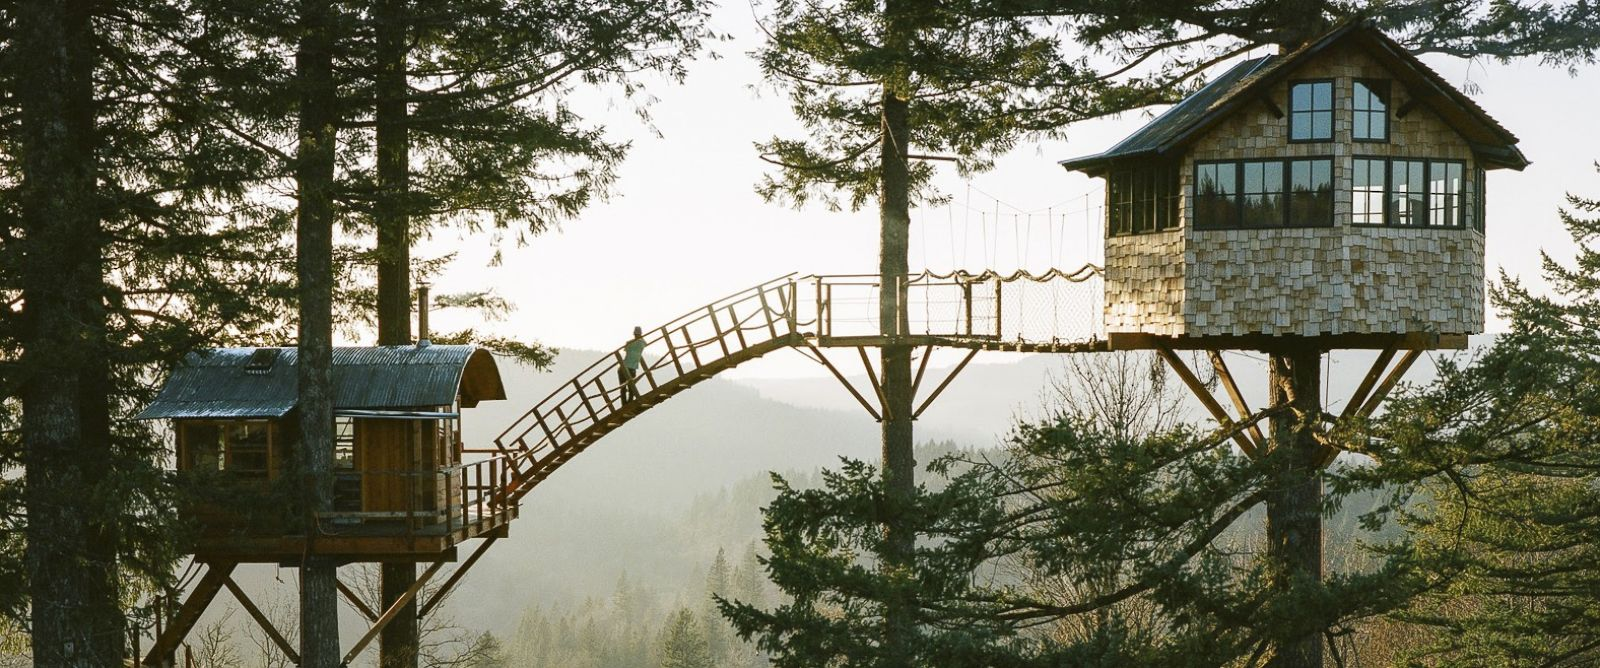 Washington man builds incredible treehouse with its own for Building a house in washington state